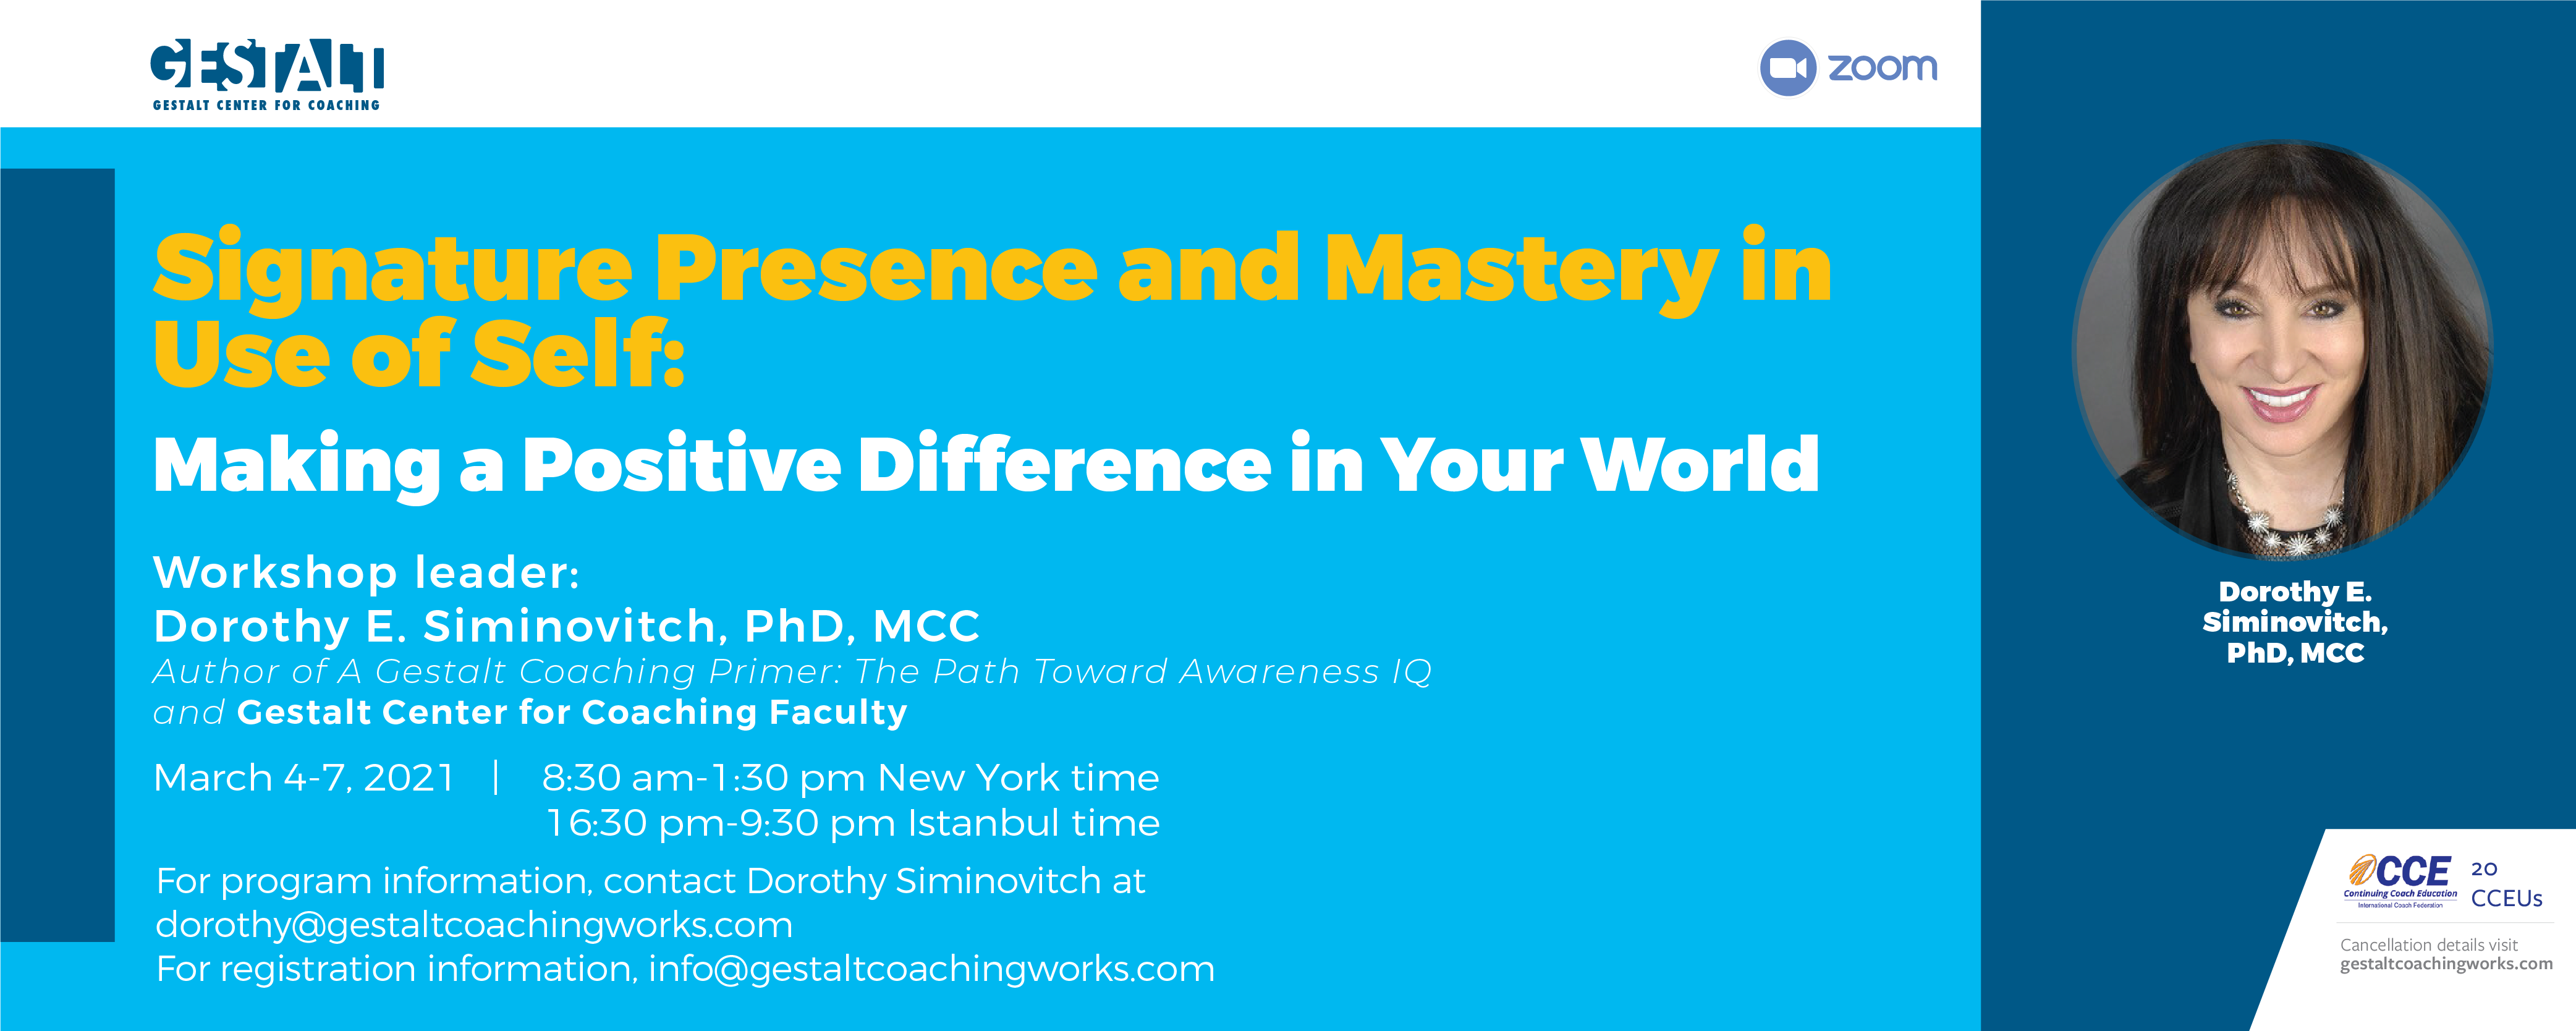 Presence and Mastery in Use of Self Workshop - March 2021